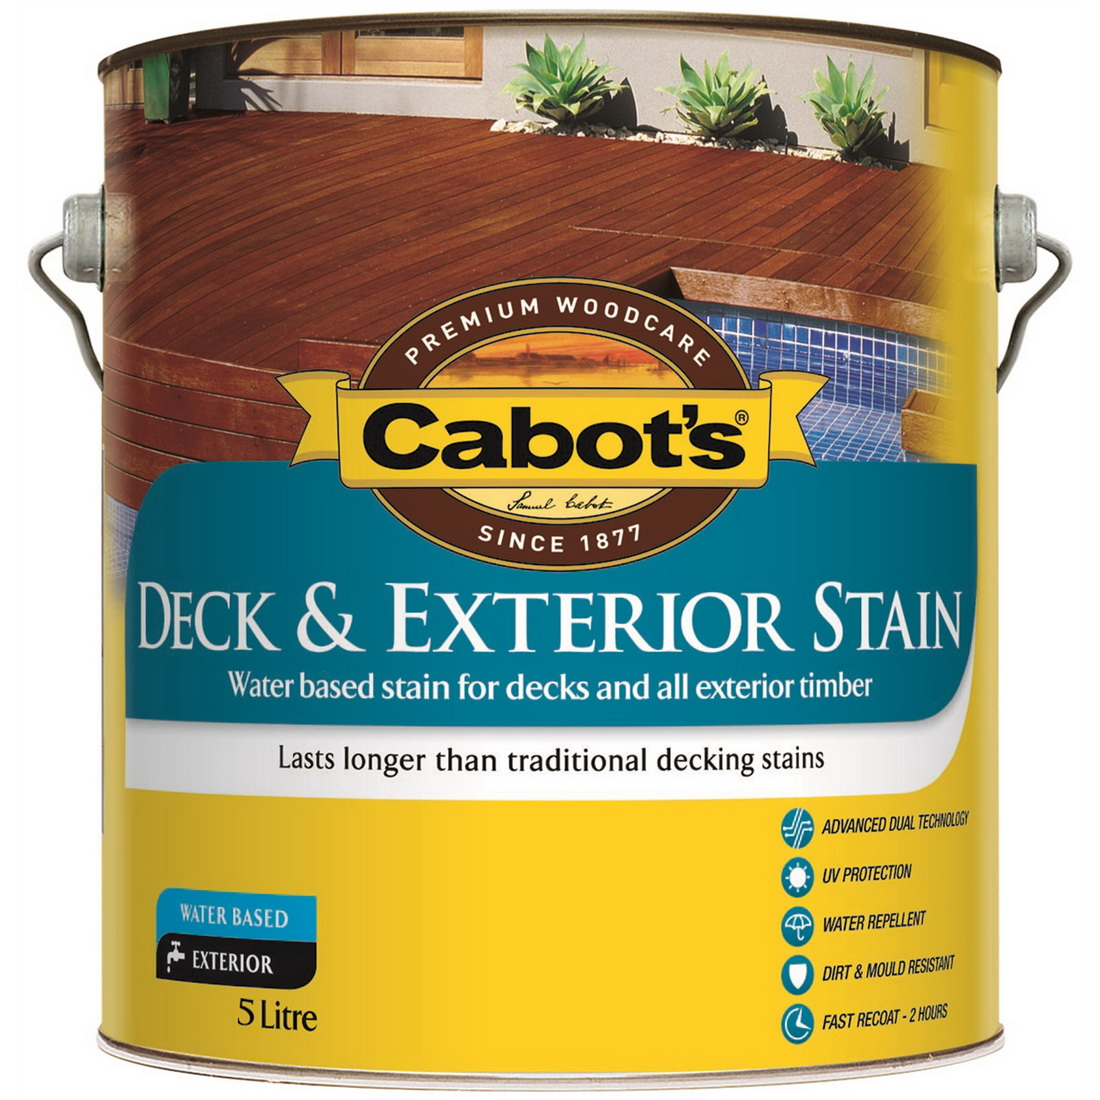 Deck & Exterior Stain Water Based New Rustic Oak 5L 592W0110-5L